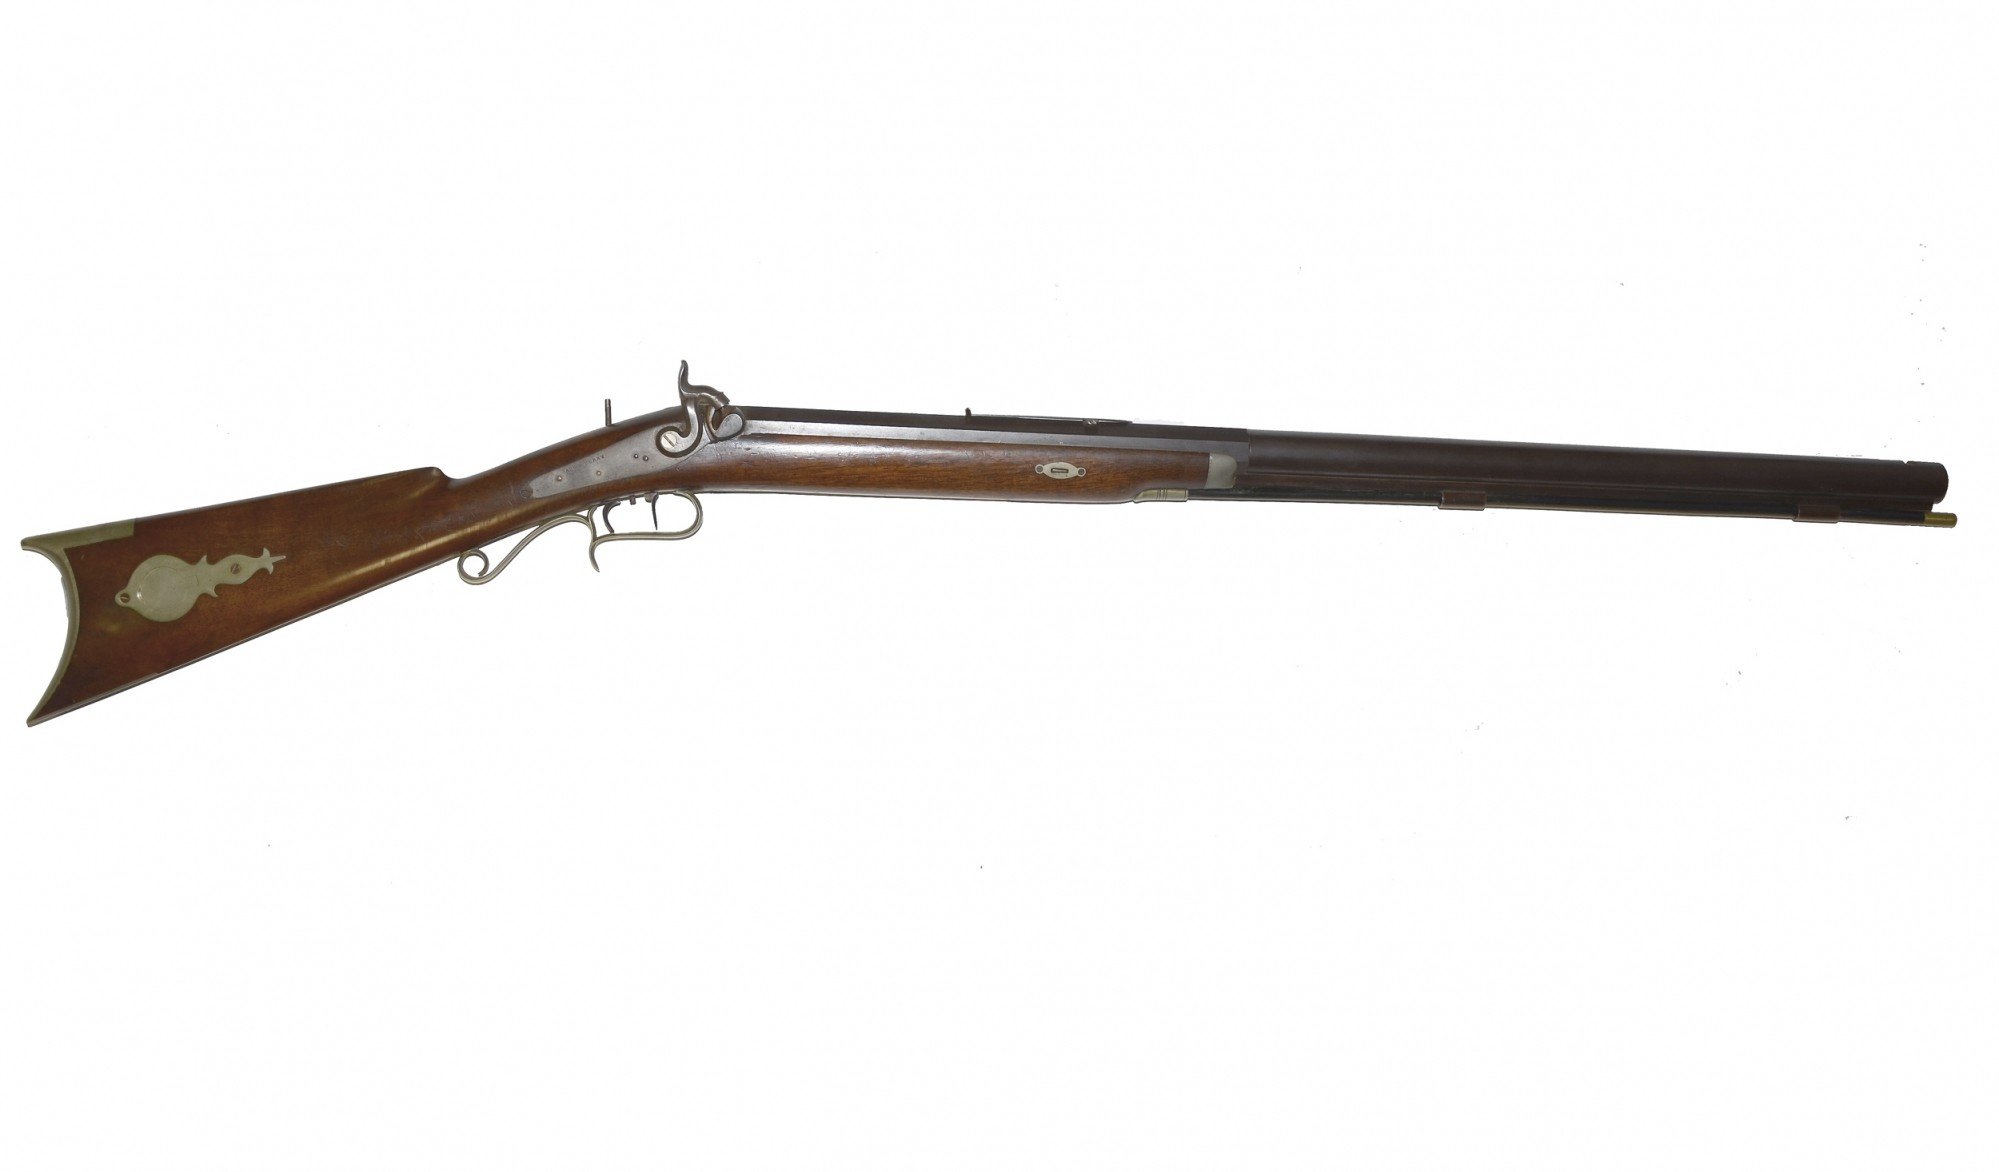 LARGE HEAVY BARRELED HALF-STOCK TARGET RIFLE WITH GERMAN SILVER FURNITURE MADE BY AUG. H. PERRY